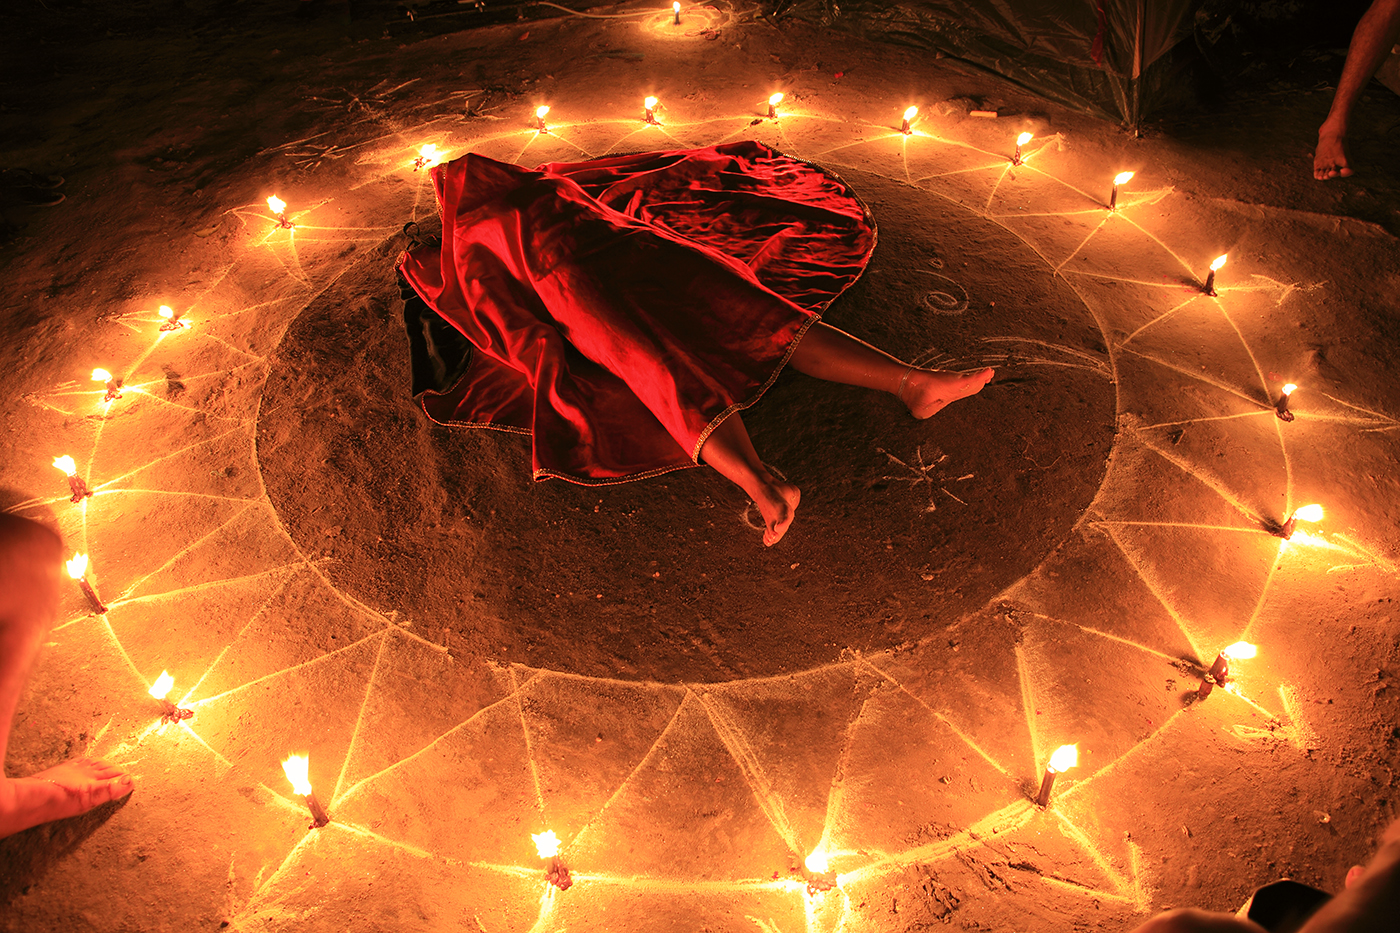 A night ritual begins.  The participant is placed inside the oracle to induce a trance-state and covered in a red shroud, symbolizing the nature of the spirit to be invoked.  The arrows point outward to the many directions the spirit must take on its difficult journey towards resurrection.